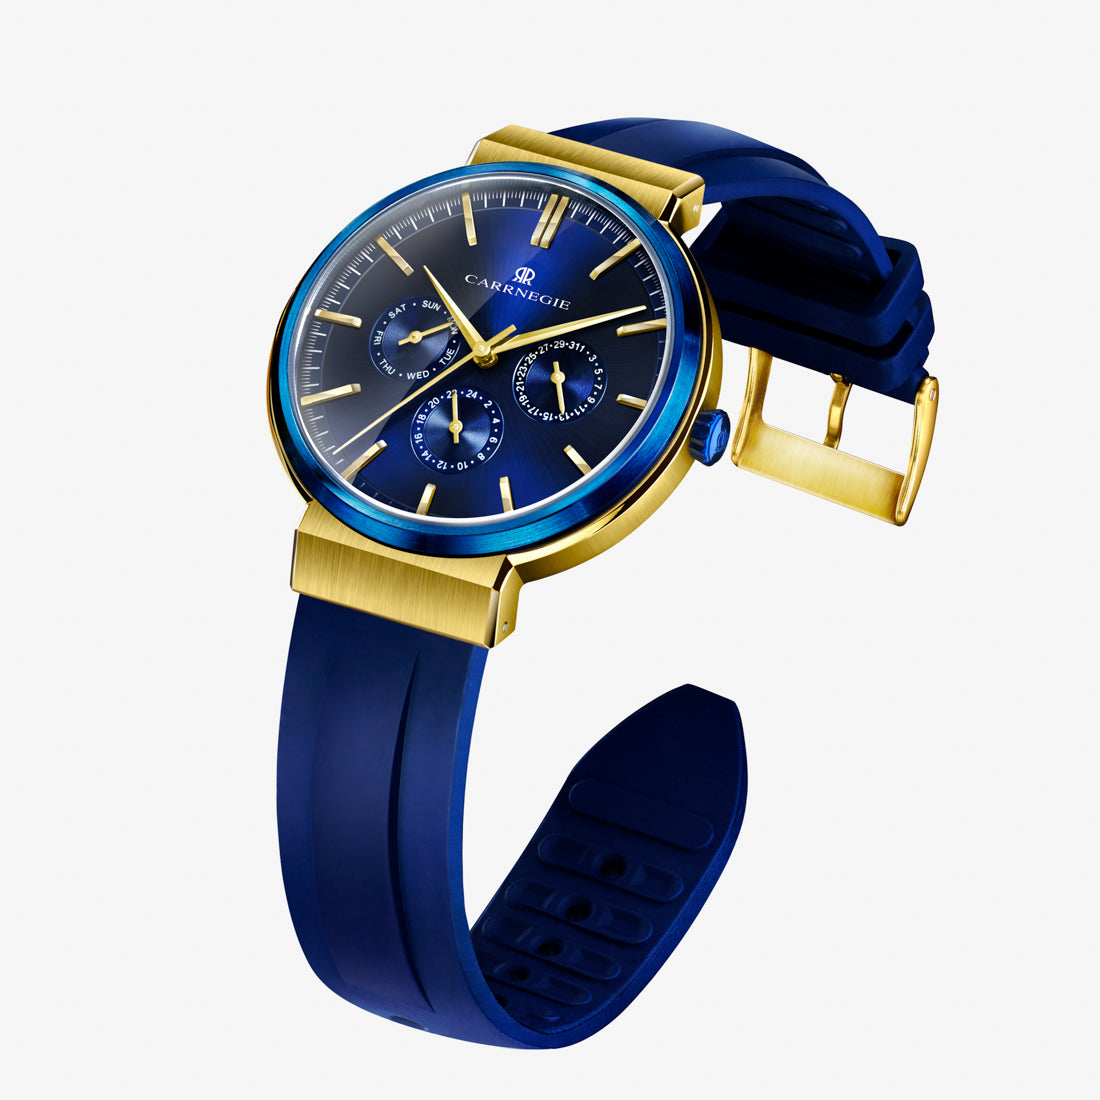 SPORTS BLUE GOLD